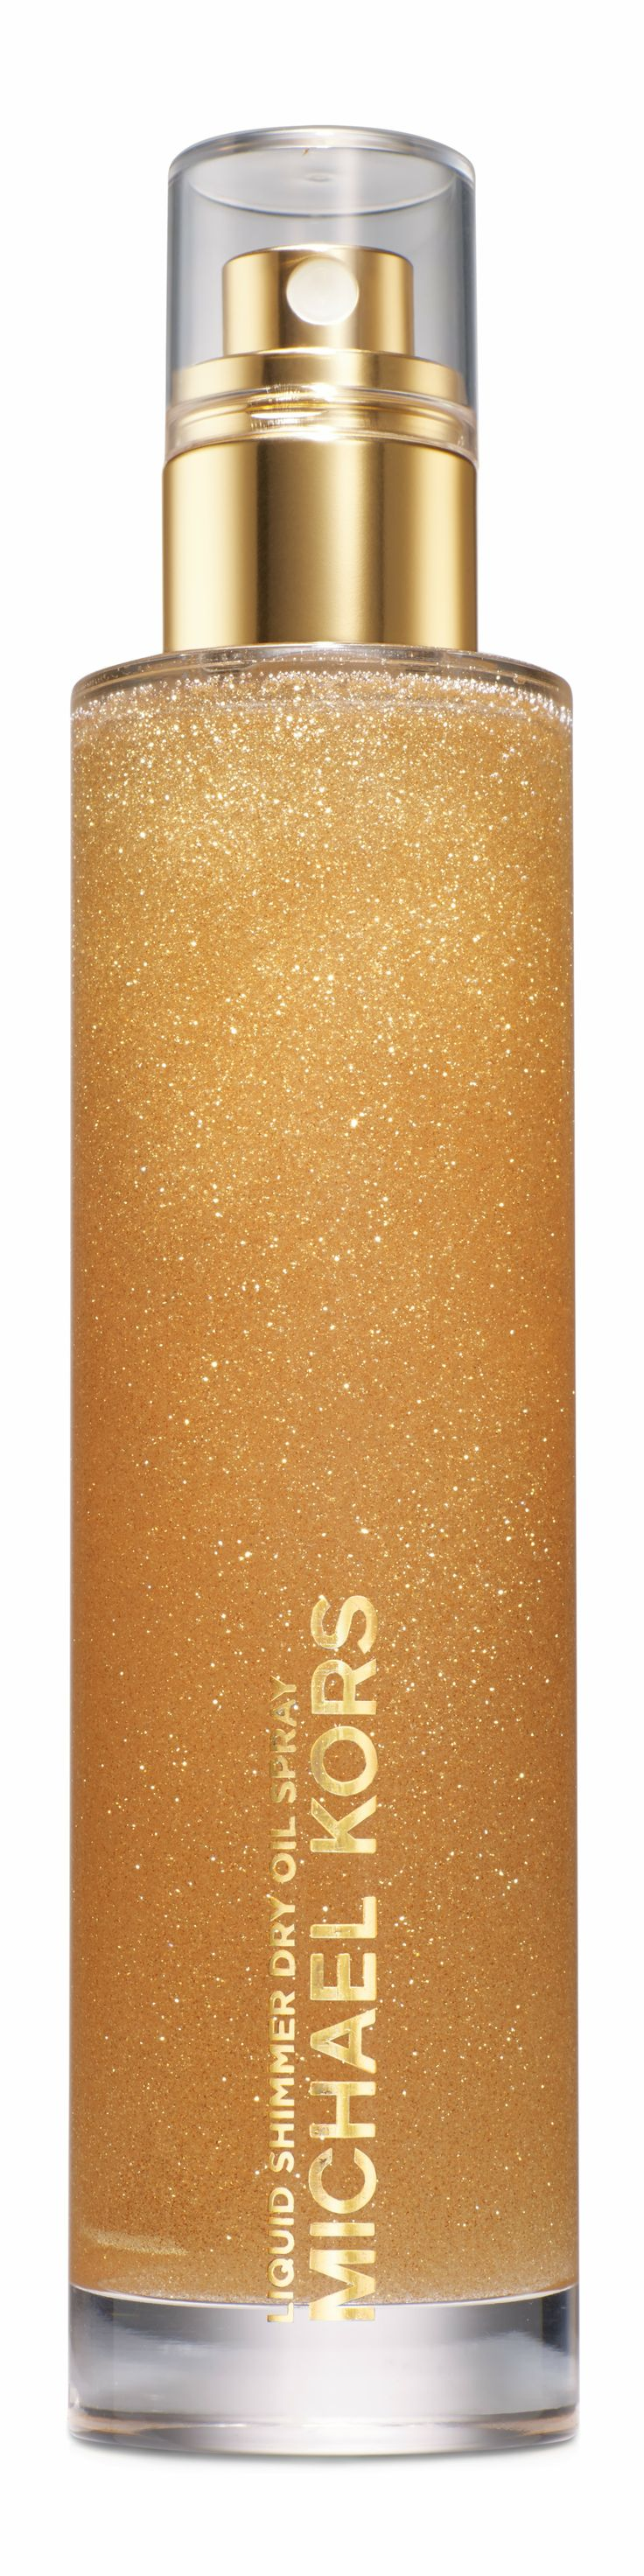 Liquid Shimmer Dry Oil Spray, by Michael Kors. A delicious way to make your skin shine and look beautiful.